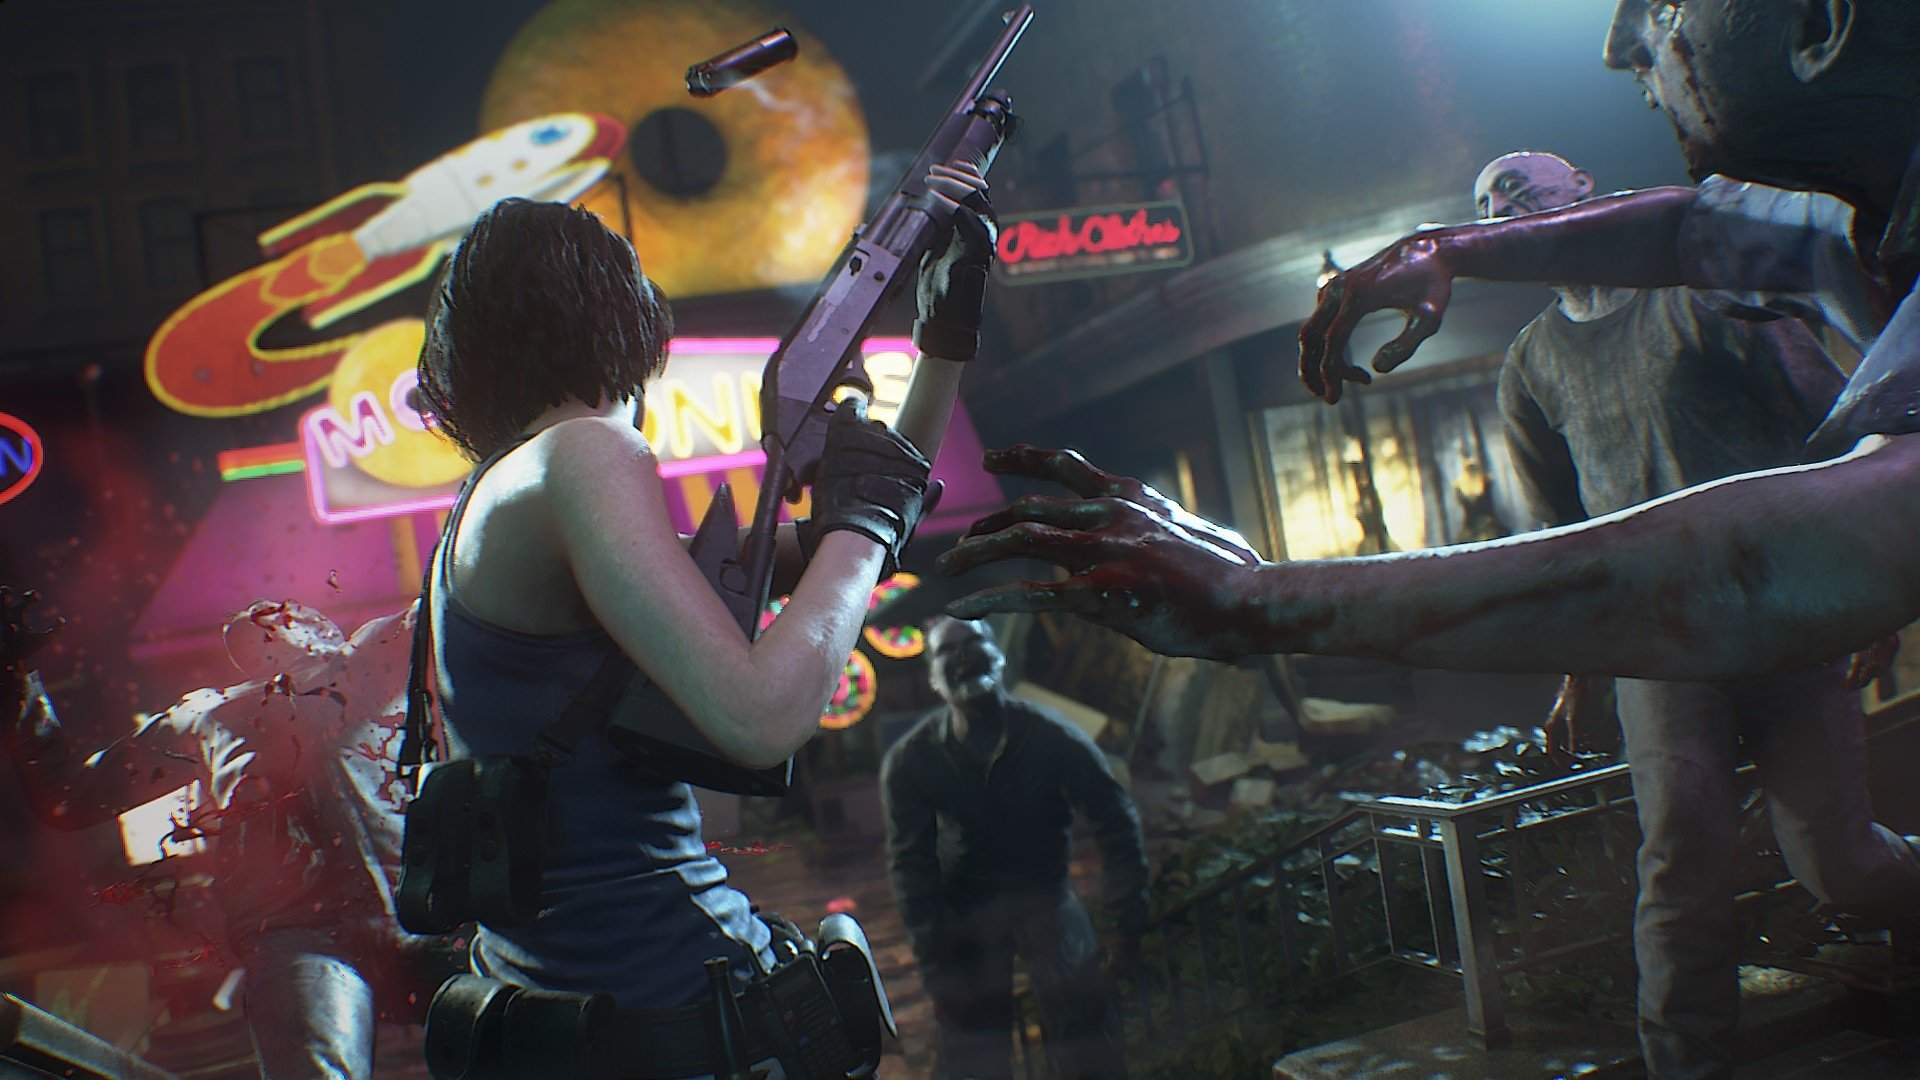 The Resident Evil 3 remake takes a lot of cues from Resident Evil 2 screenshot